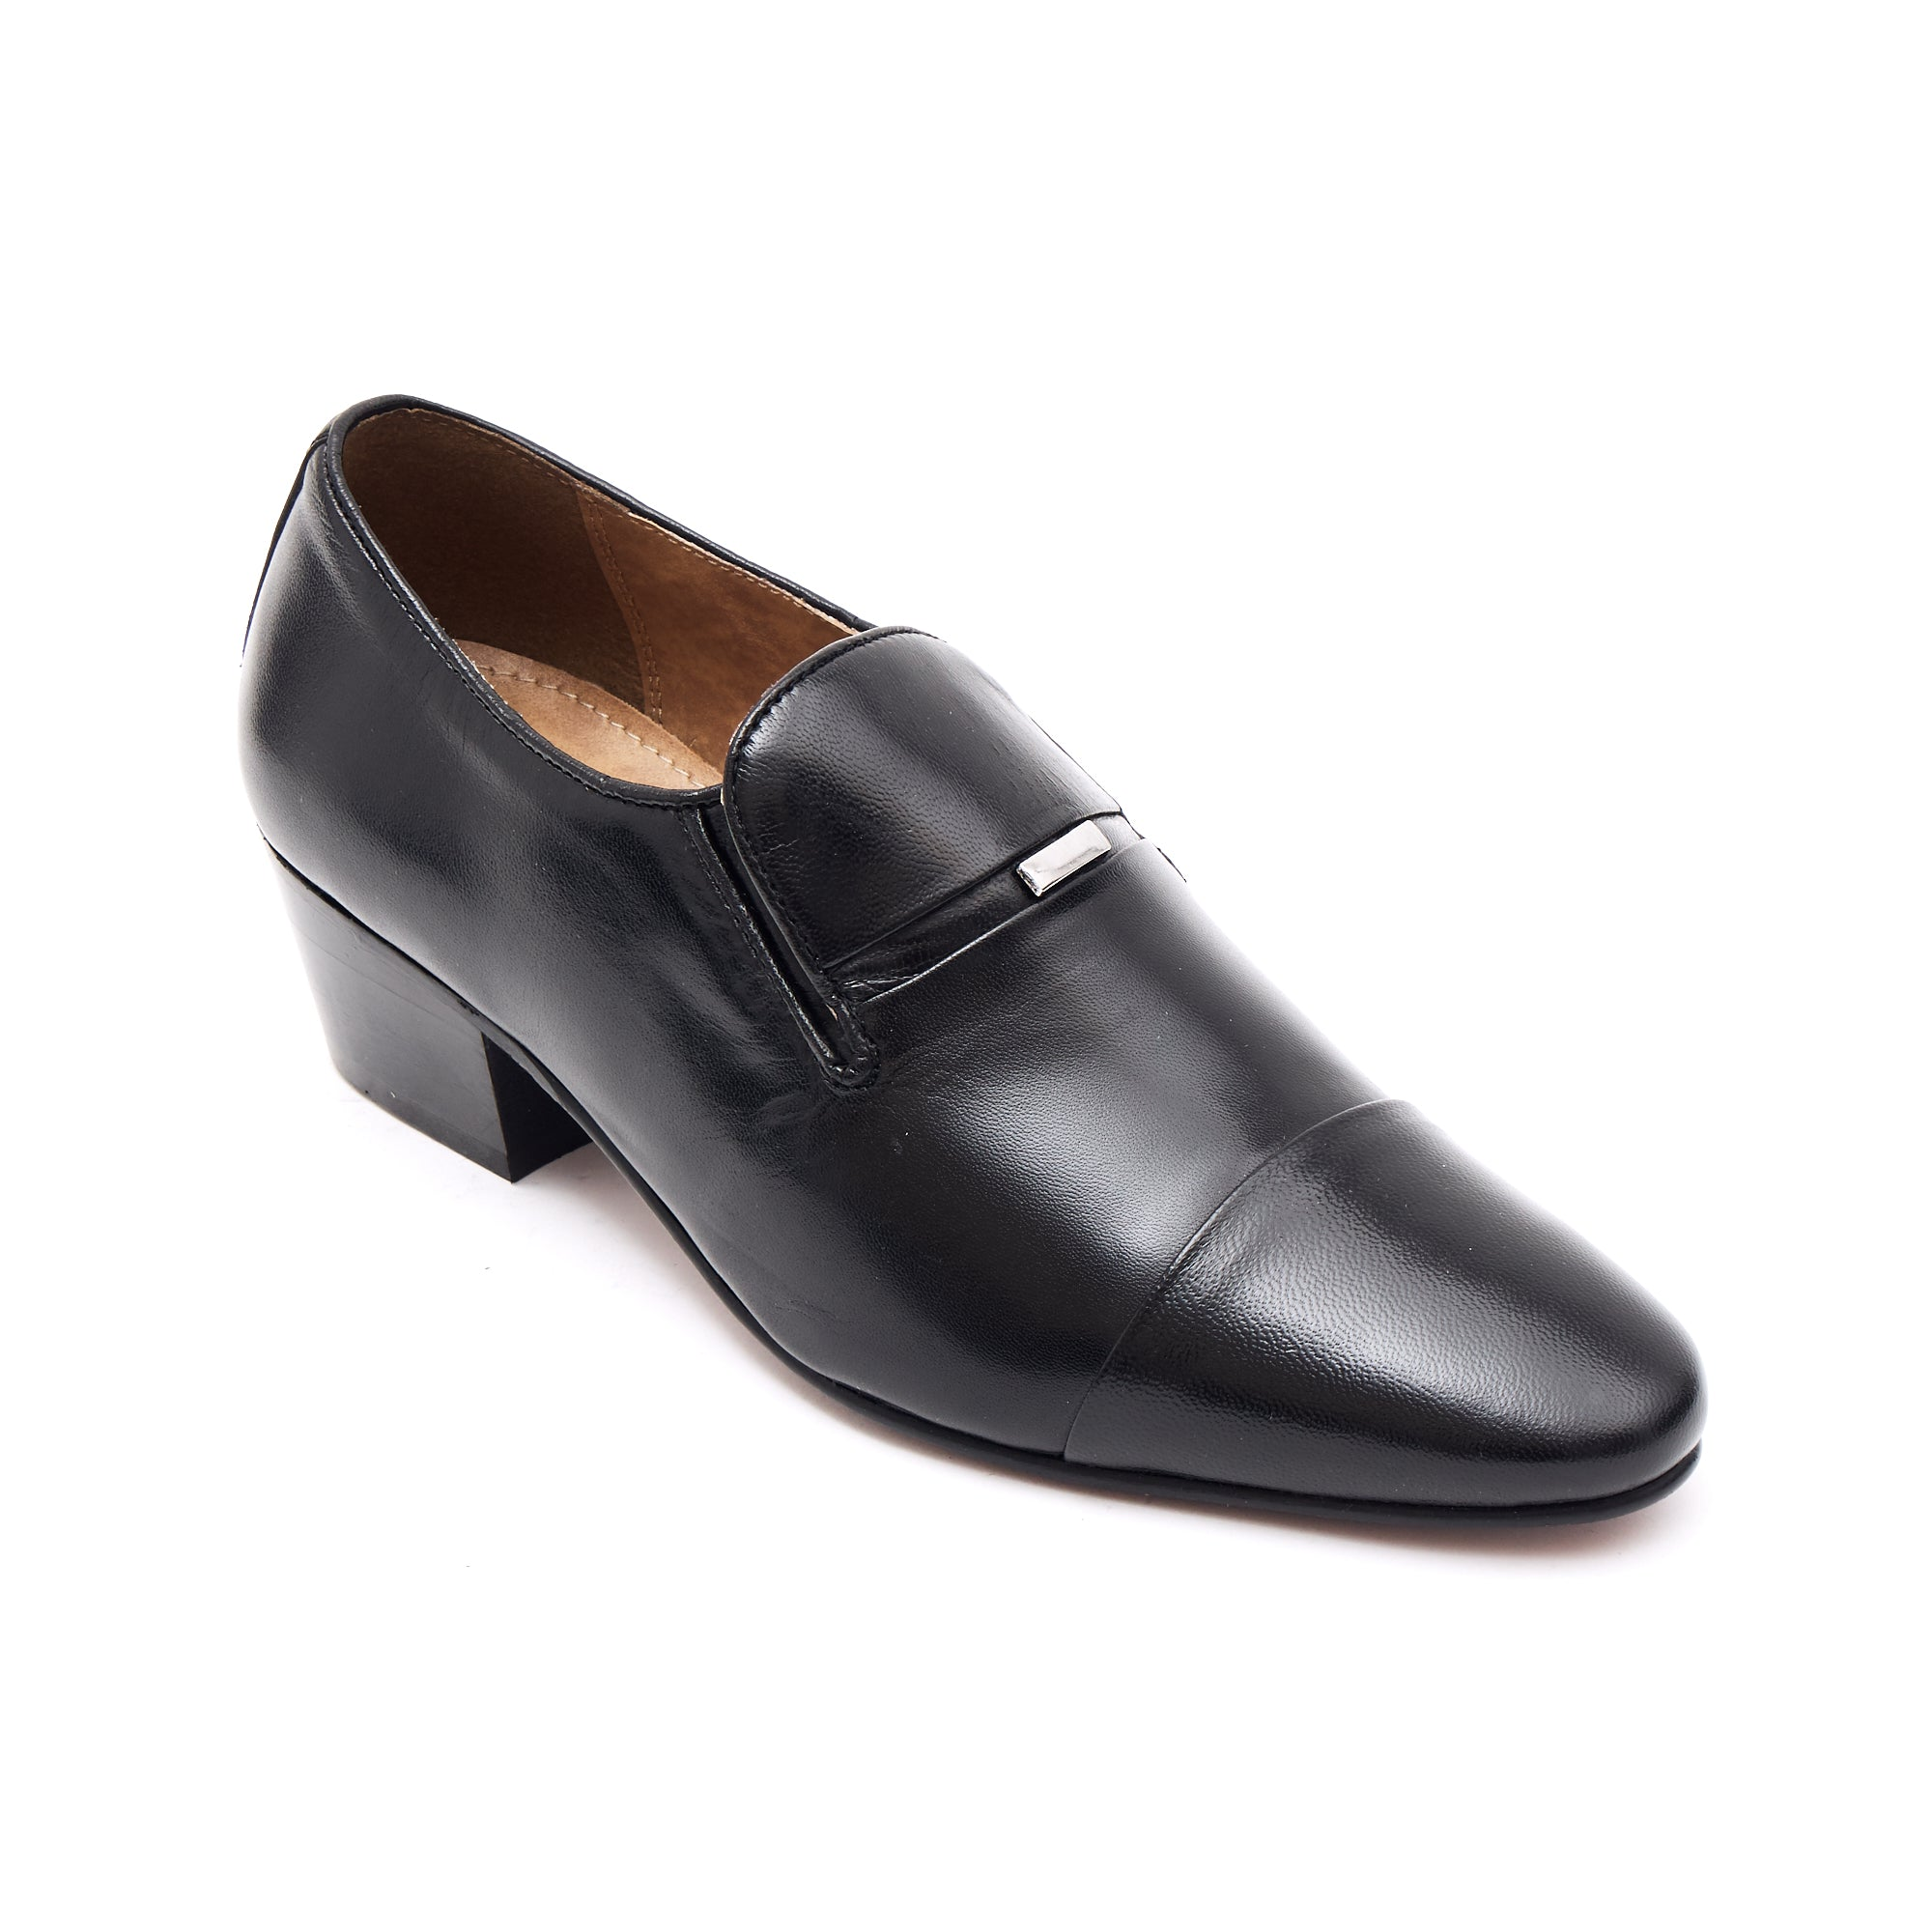 Mens Cuban Heel Leather Shoes - 33478 Black